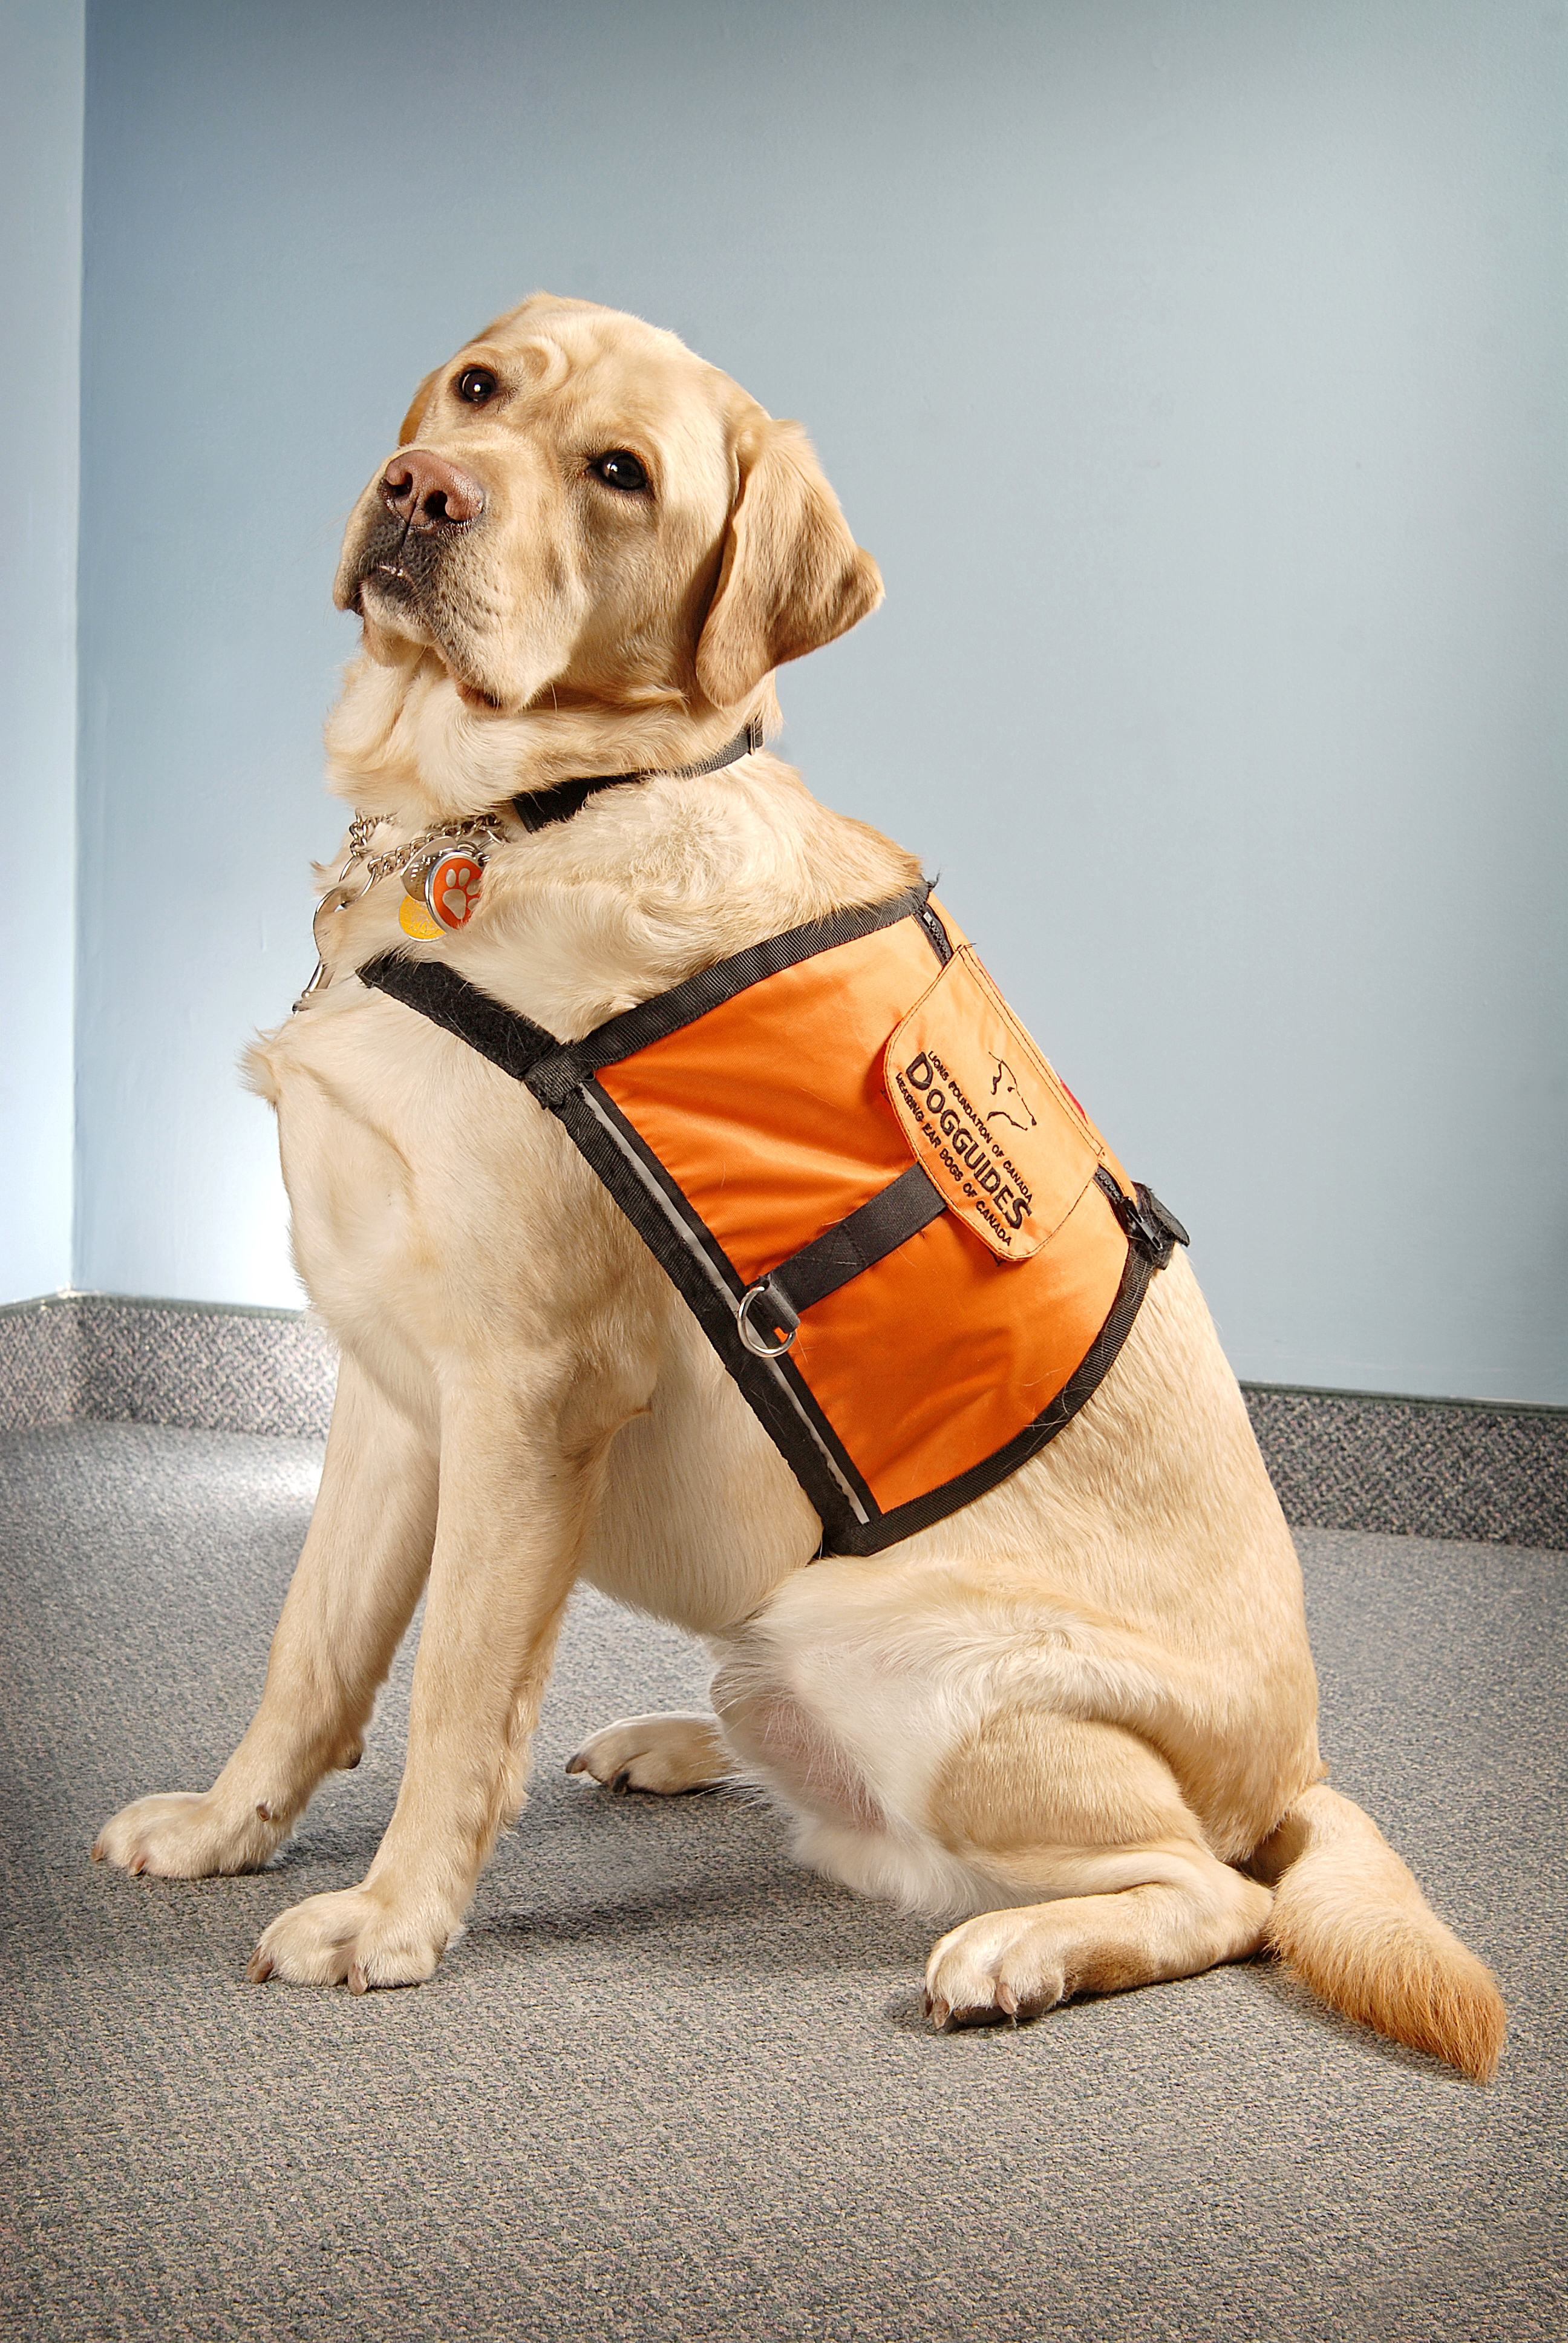 Hearing Aids For Dogs >> Please Say a Prayer for this Sweet Hearing Dog   Lipreading Mom